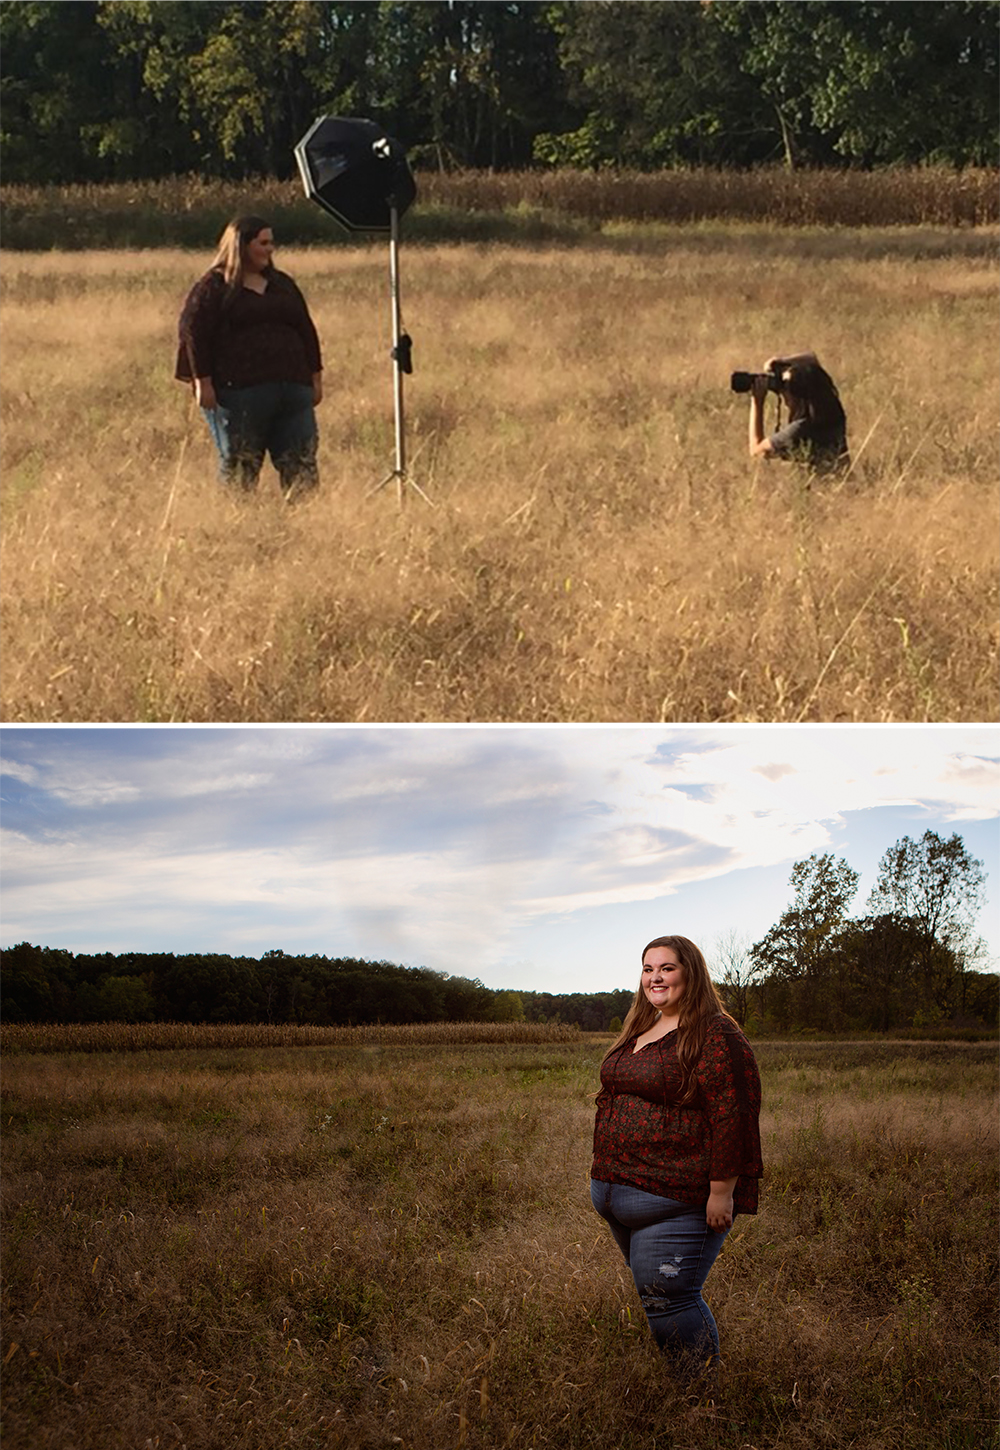 Top photo provided by Betsy Platte, Bottom photo was resulting image taken by Reflections Photography